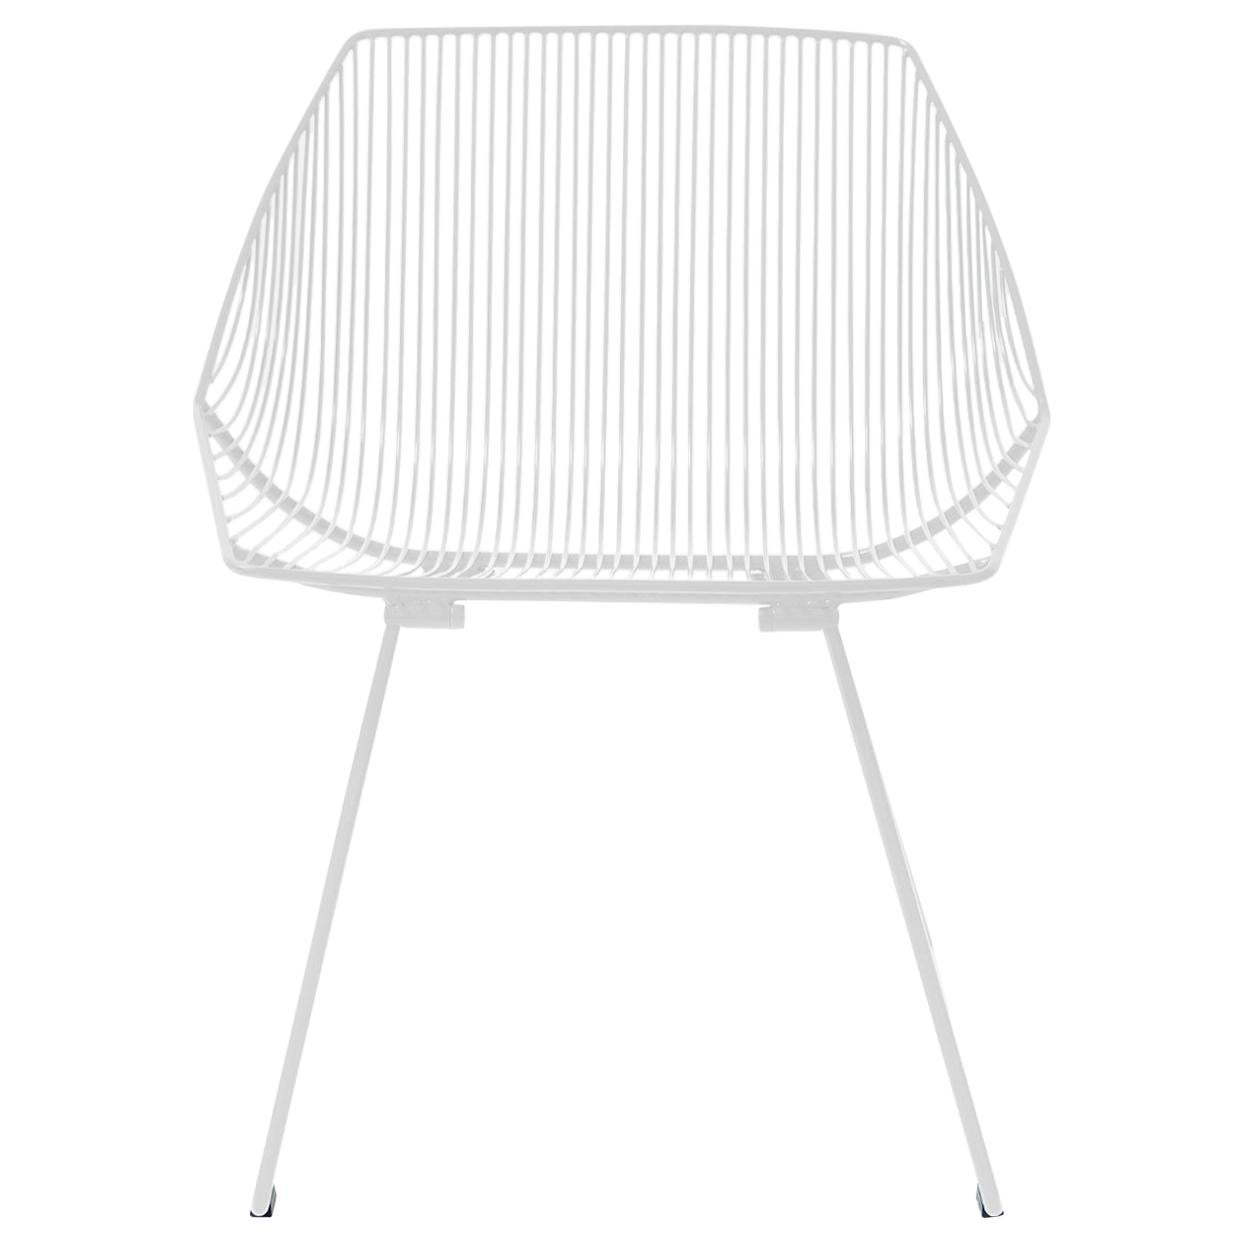 Minimalist Outdoor Wire Lounge Chair, The Bunny Lounge in White